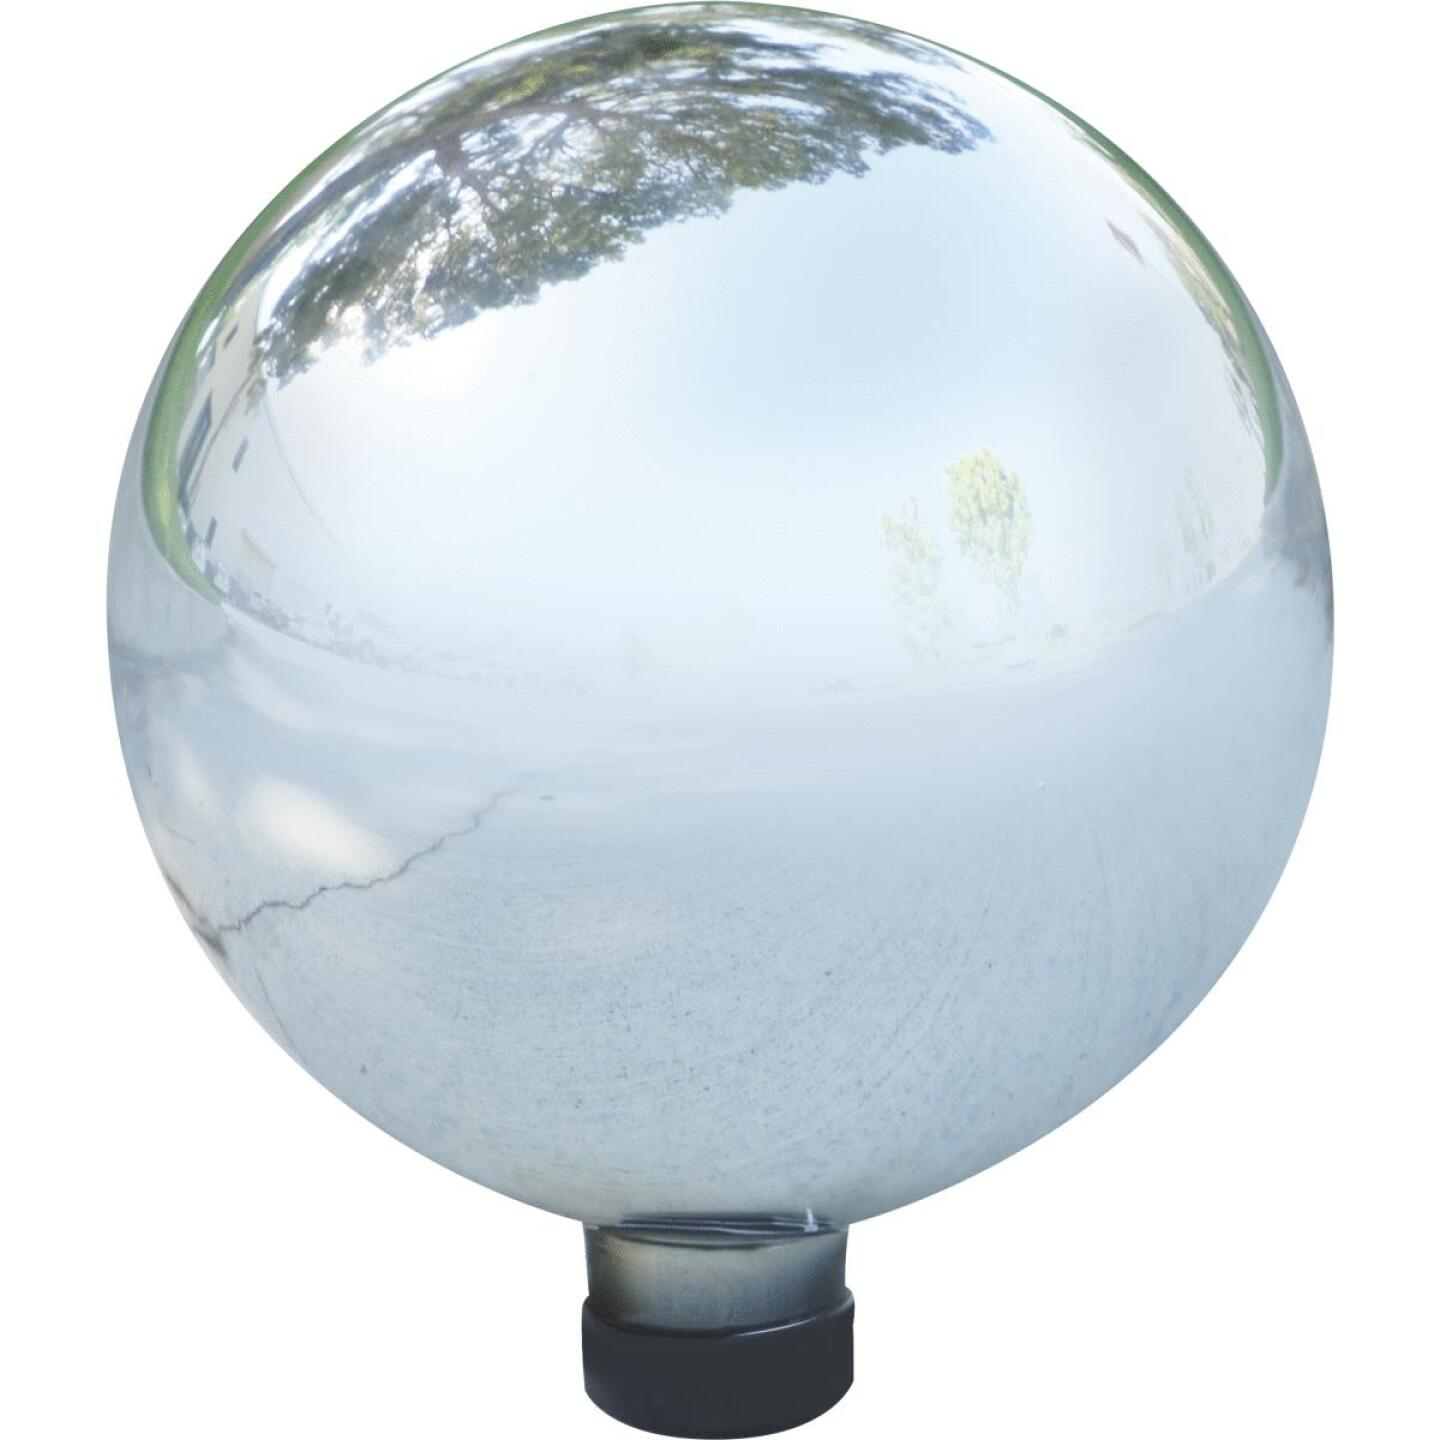 Alpine 10 In. Dia. Electric Silver Glass Gazing Globe Lawn Ornament Image 1